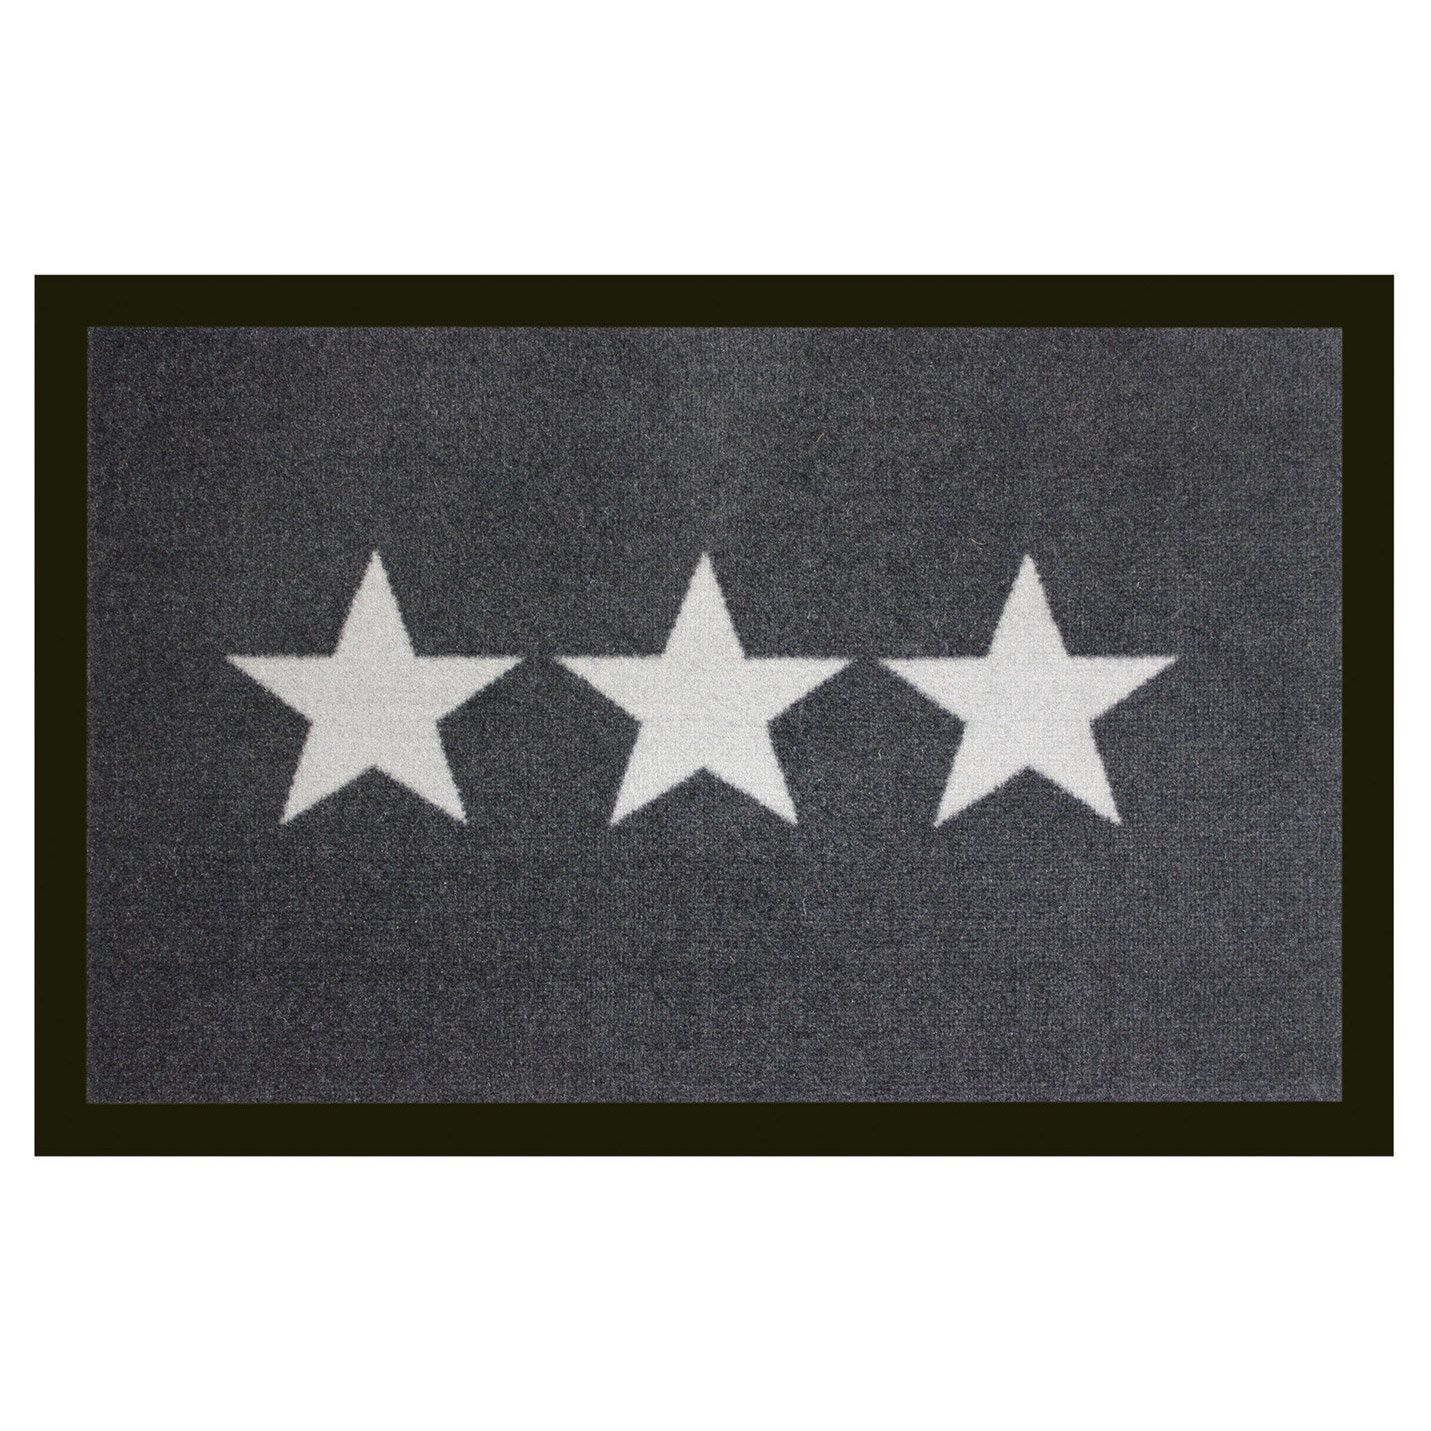 Paillasson Synthetique Anthracite L 40 Cm X L 60 Cm X Ep 0 5 Mm Stars Tapis D Entree Tapis Anti Poussiere Et Paillasson